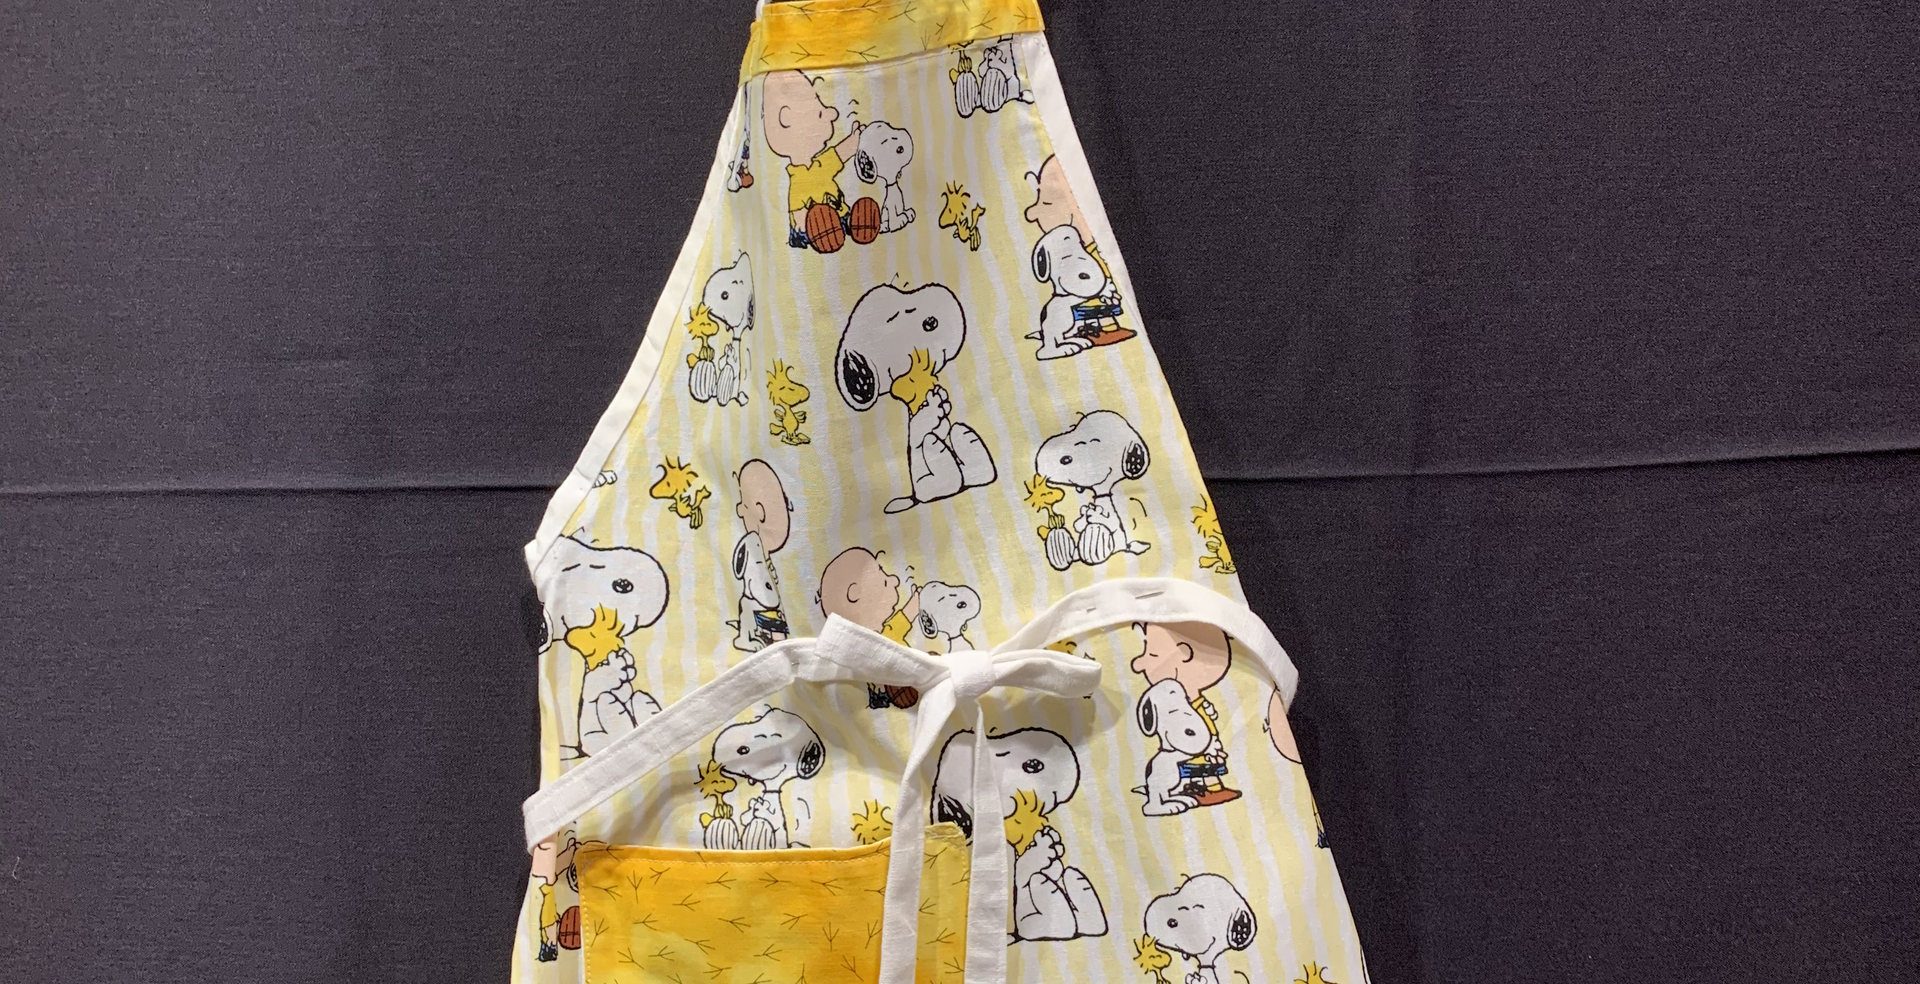 Peanuts Snoopy Apron (SOLD)